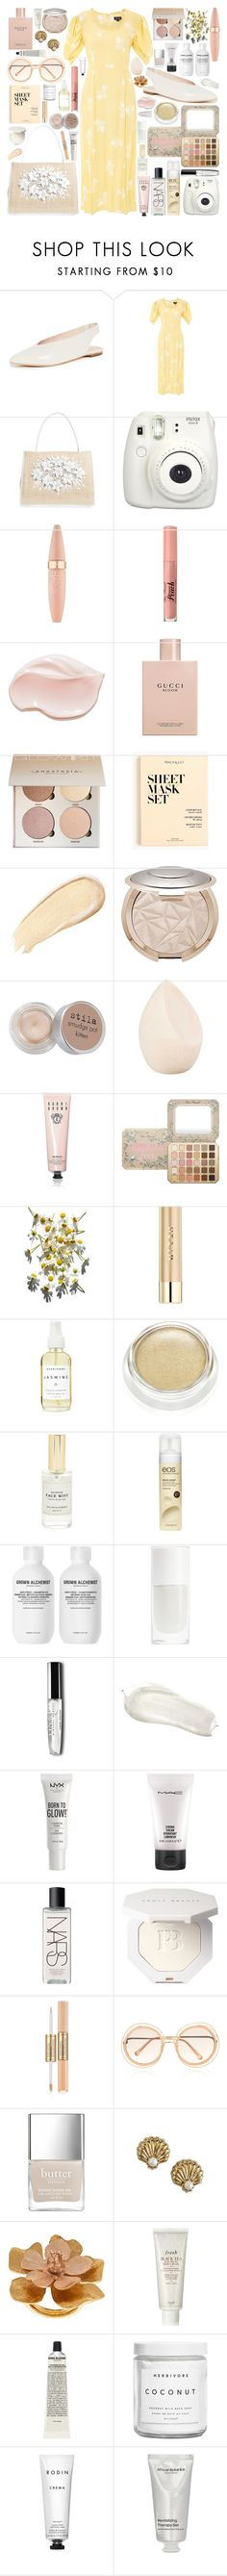 """""""Untitled #1093"""" by douxlaur on Polyvore featuring Loeffler Randall, Topshop, Nancy Gonzalez, Fujifilm, Maybelline, Too Faced Cosmetics, Gucci, J.Crew, Stila and Christian Dior"""